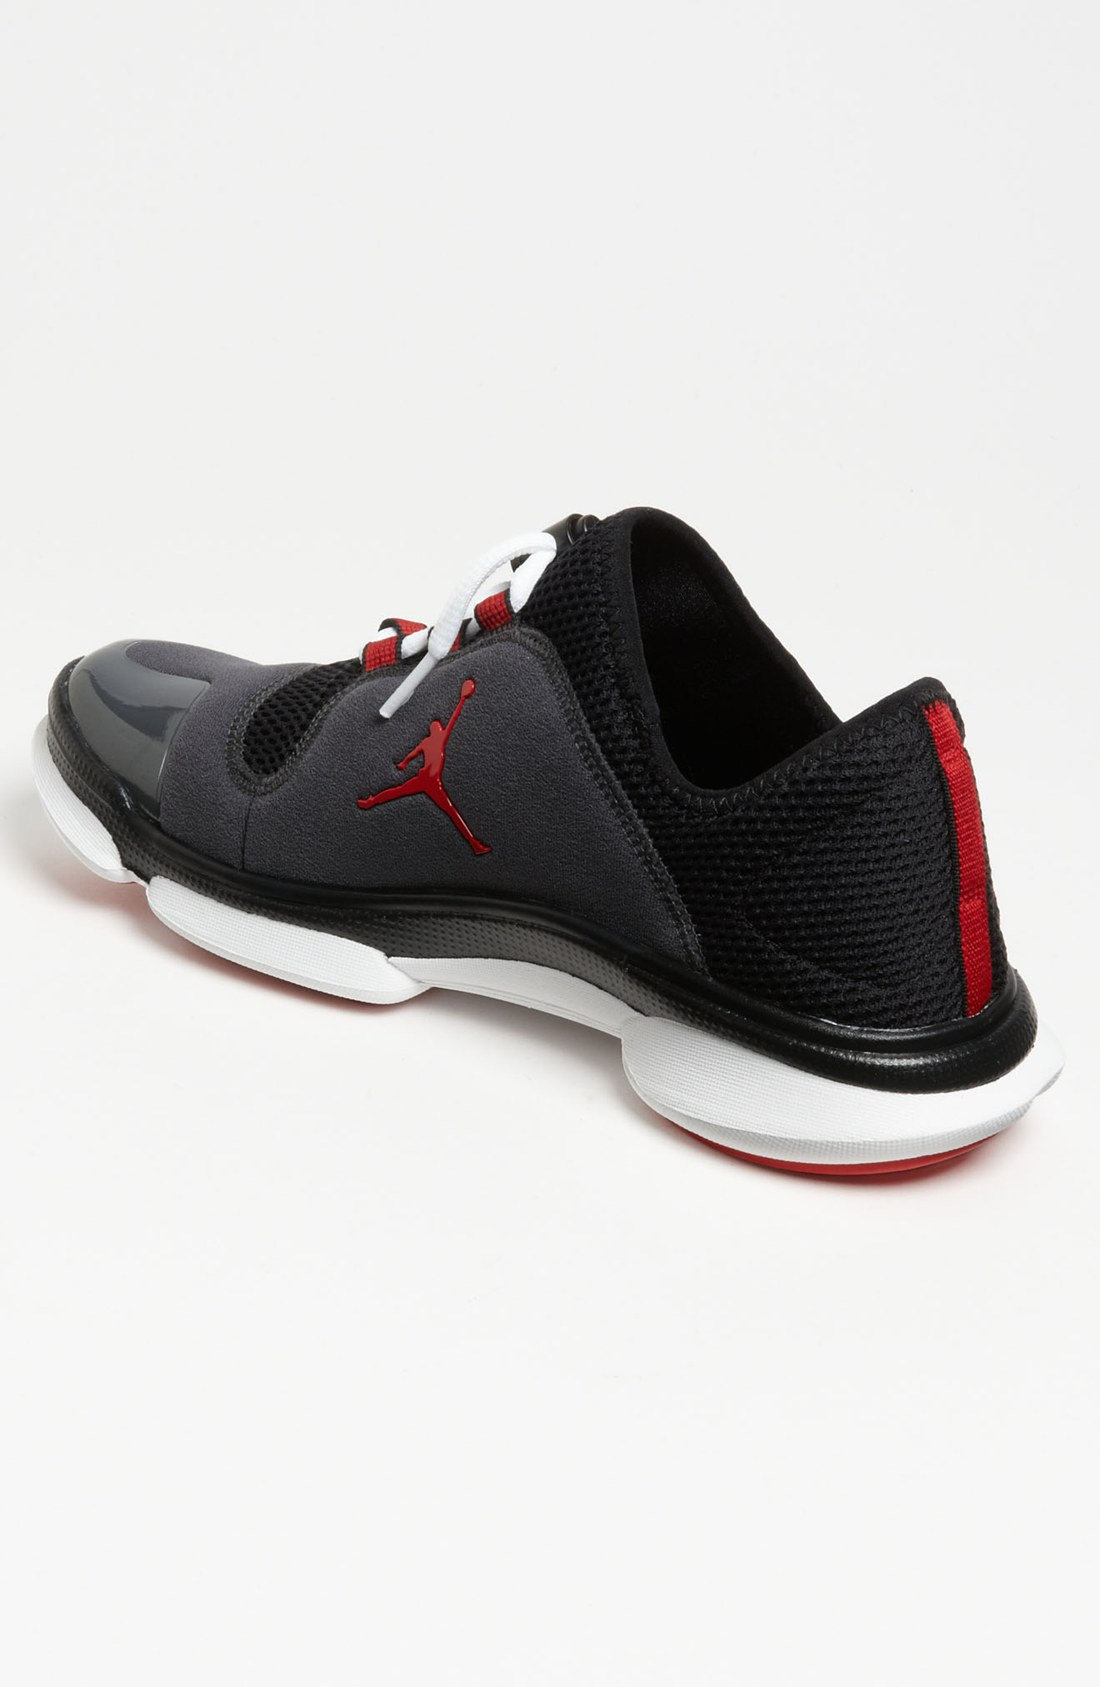 Nike Jordan Rcvr 2 Training Shoe In Black For Men | Lyst